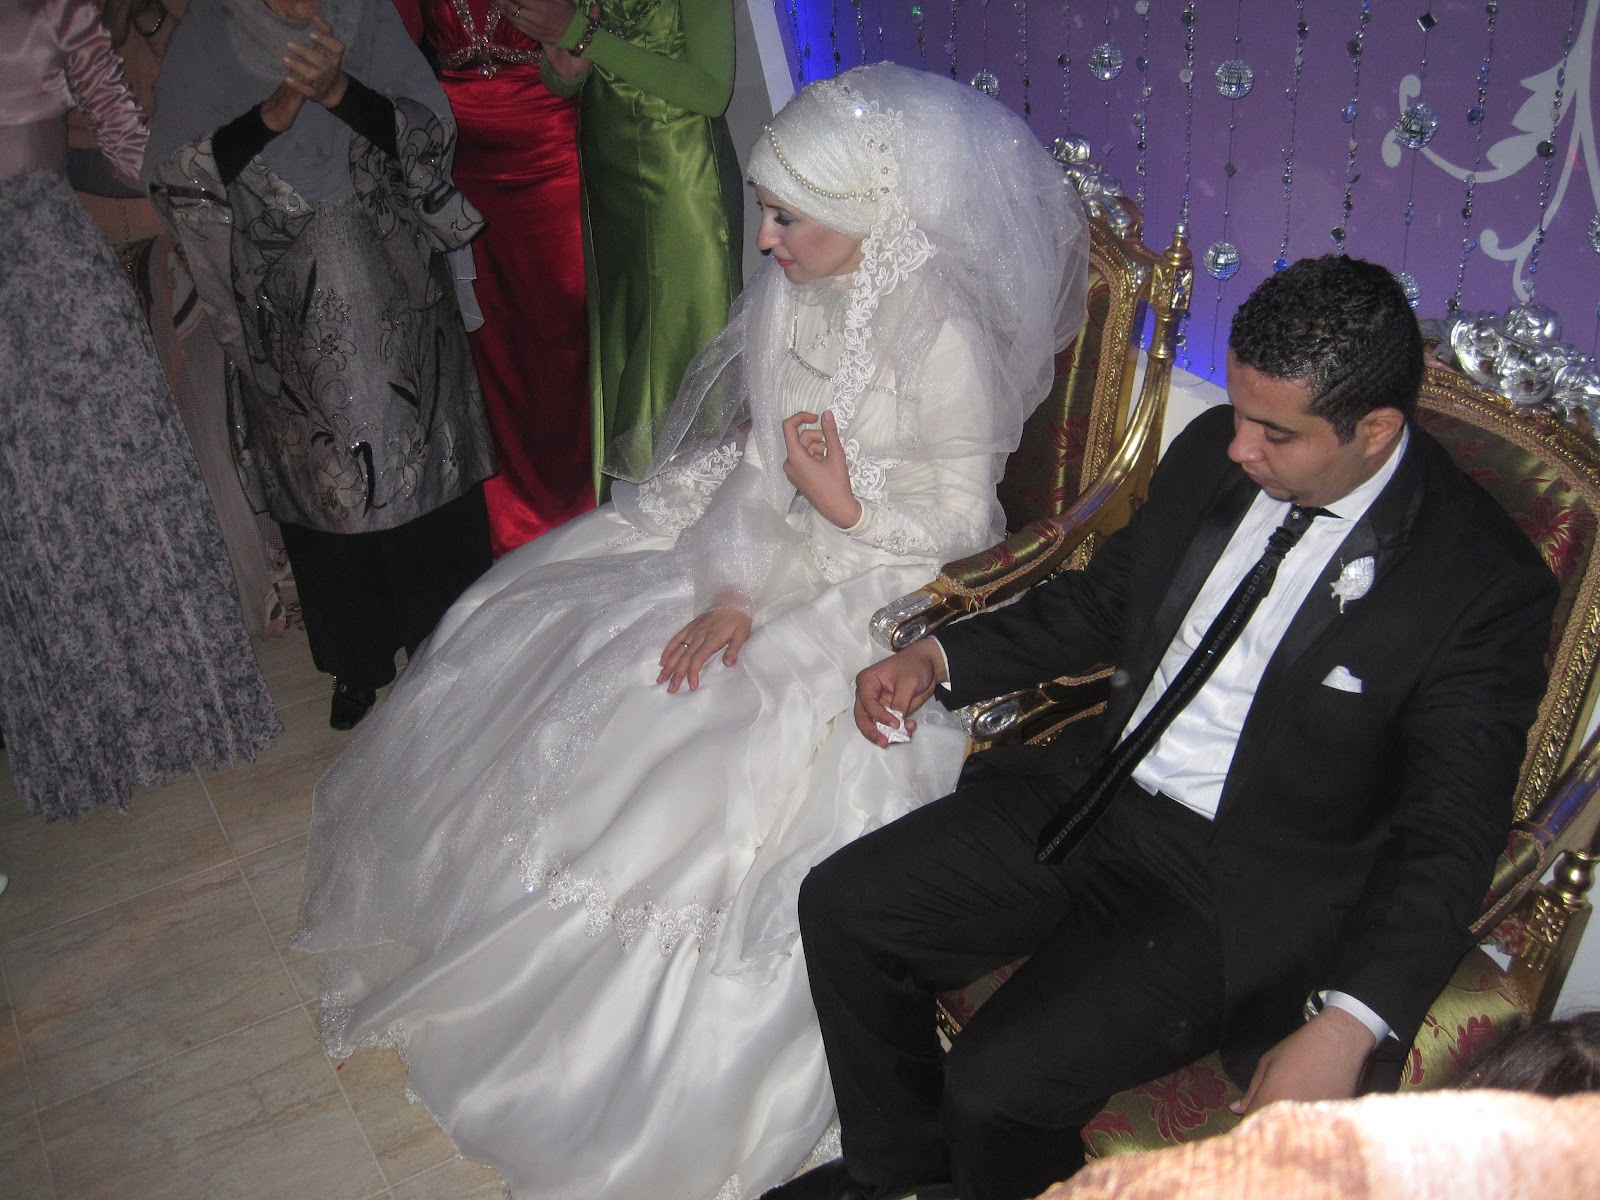 Wedding Dresses For Rent In Egypt Wedding Short Dresses